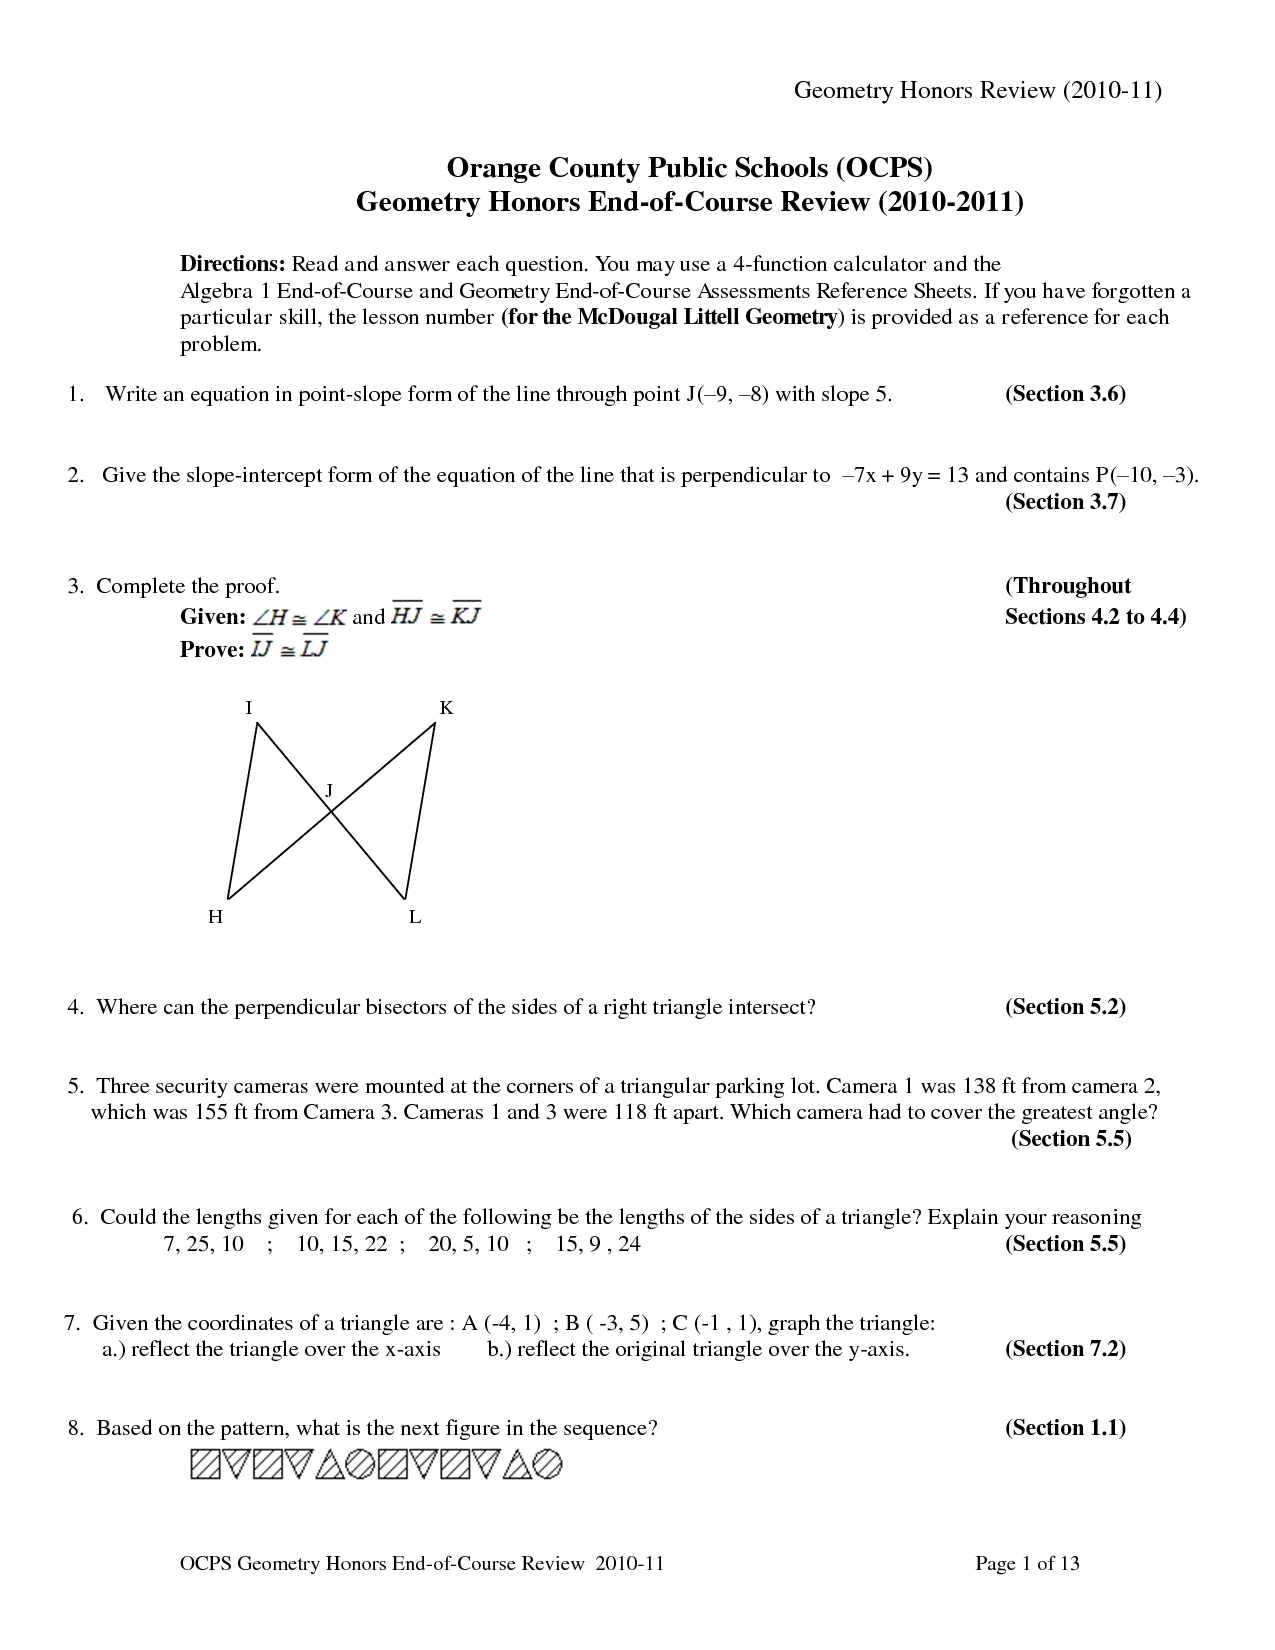 19 Best Images Of Holt Geometry Worksheet Answers